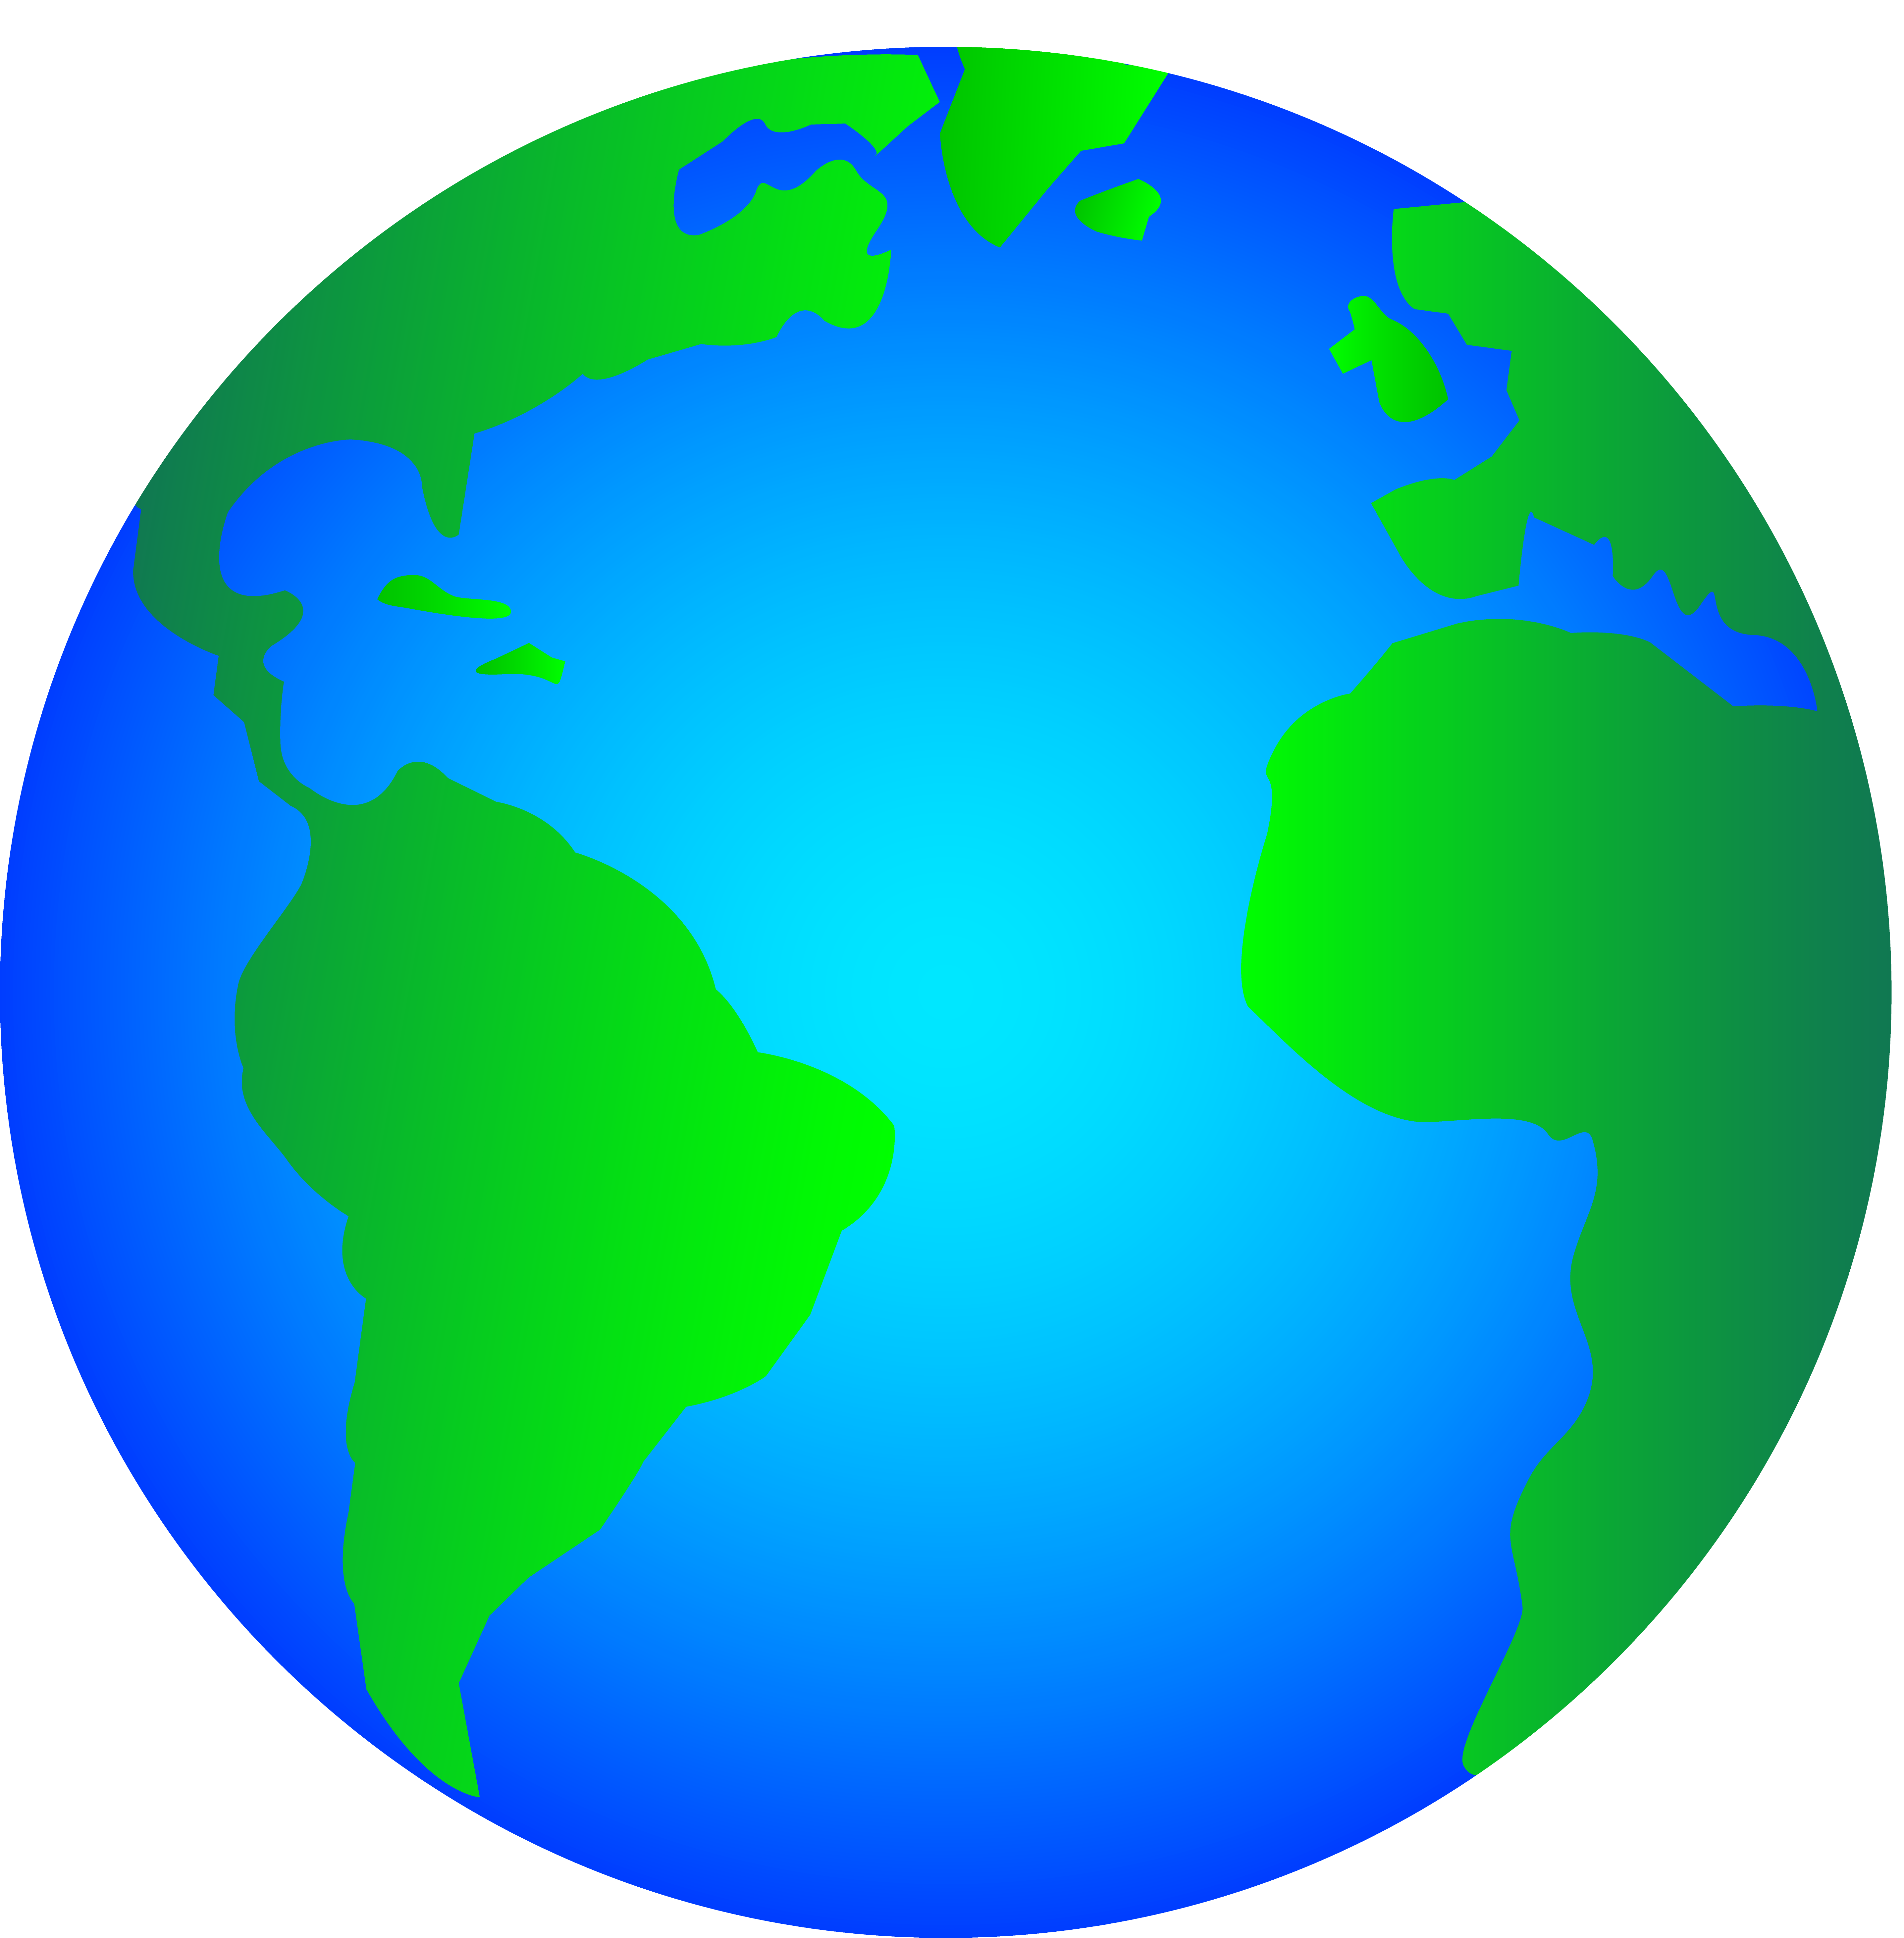 Clip Art Of World - The World Clipart